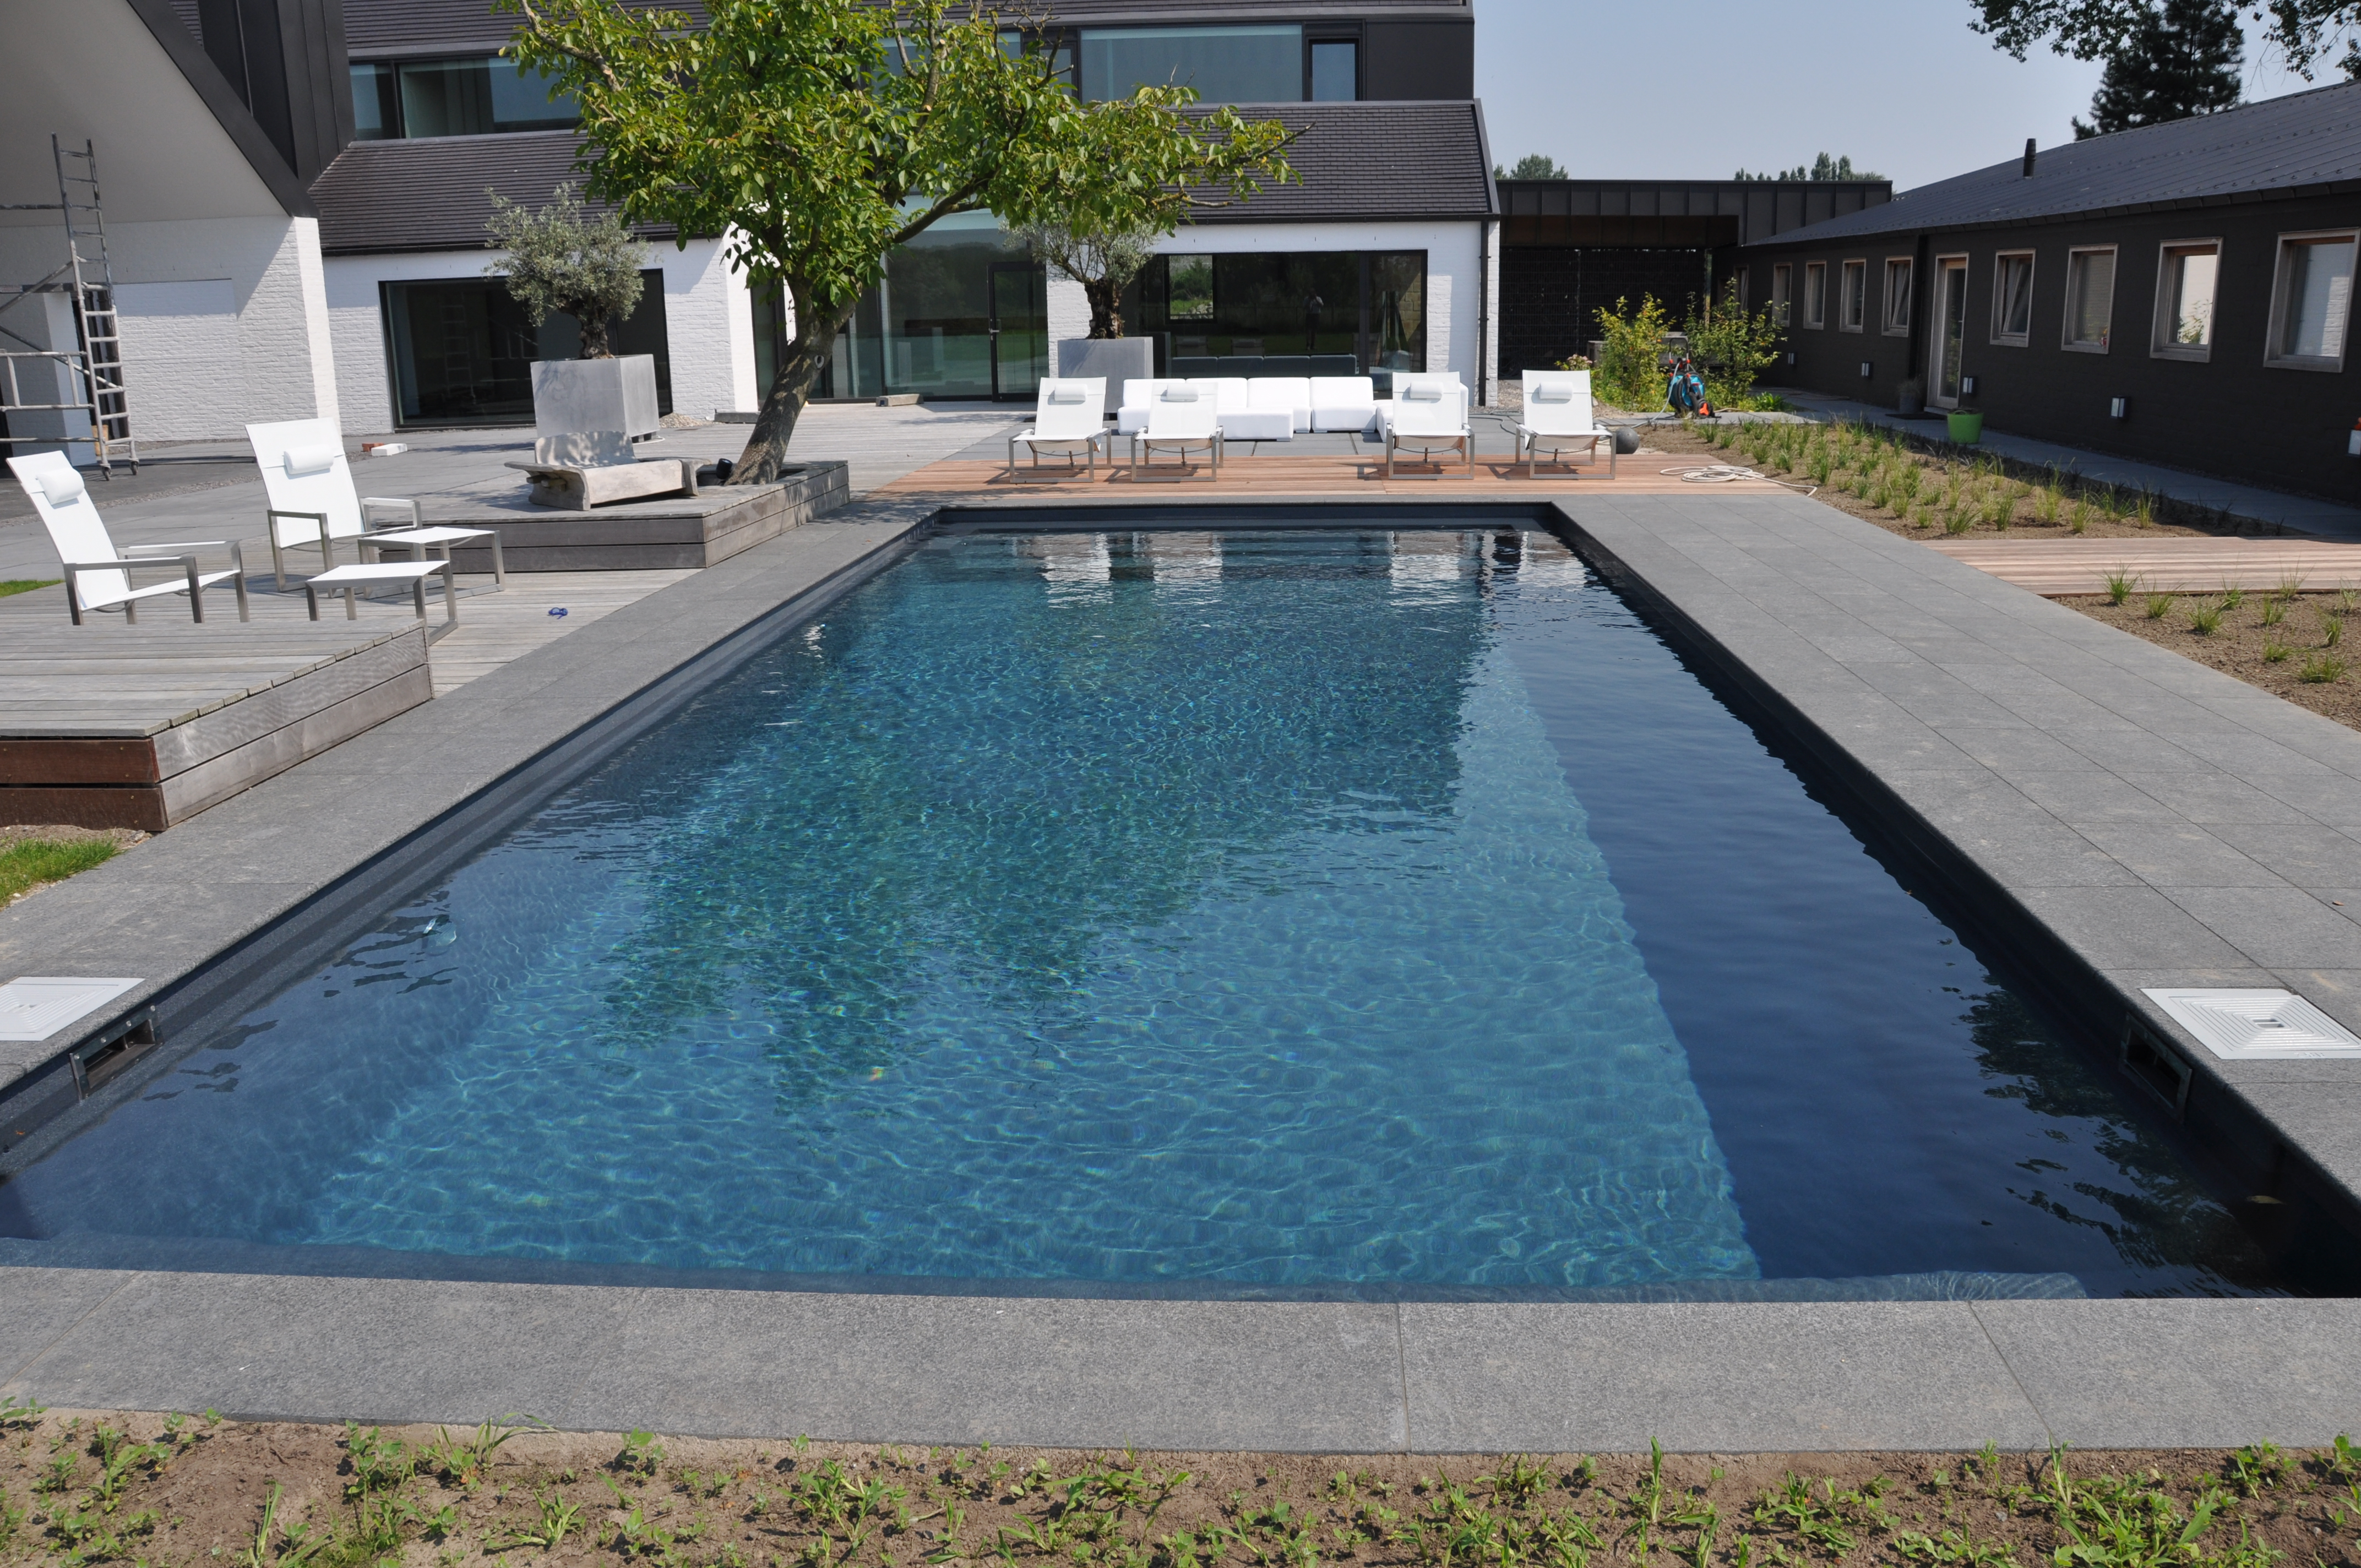 Riviere_pool_donker_zwembad